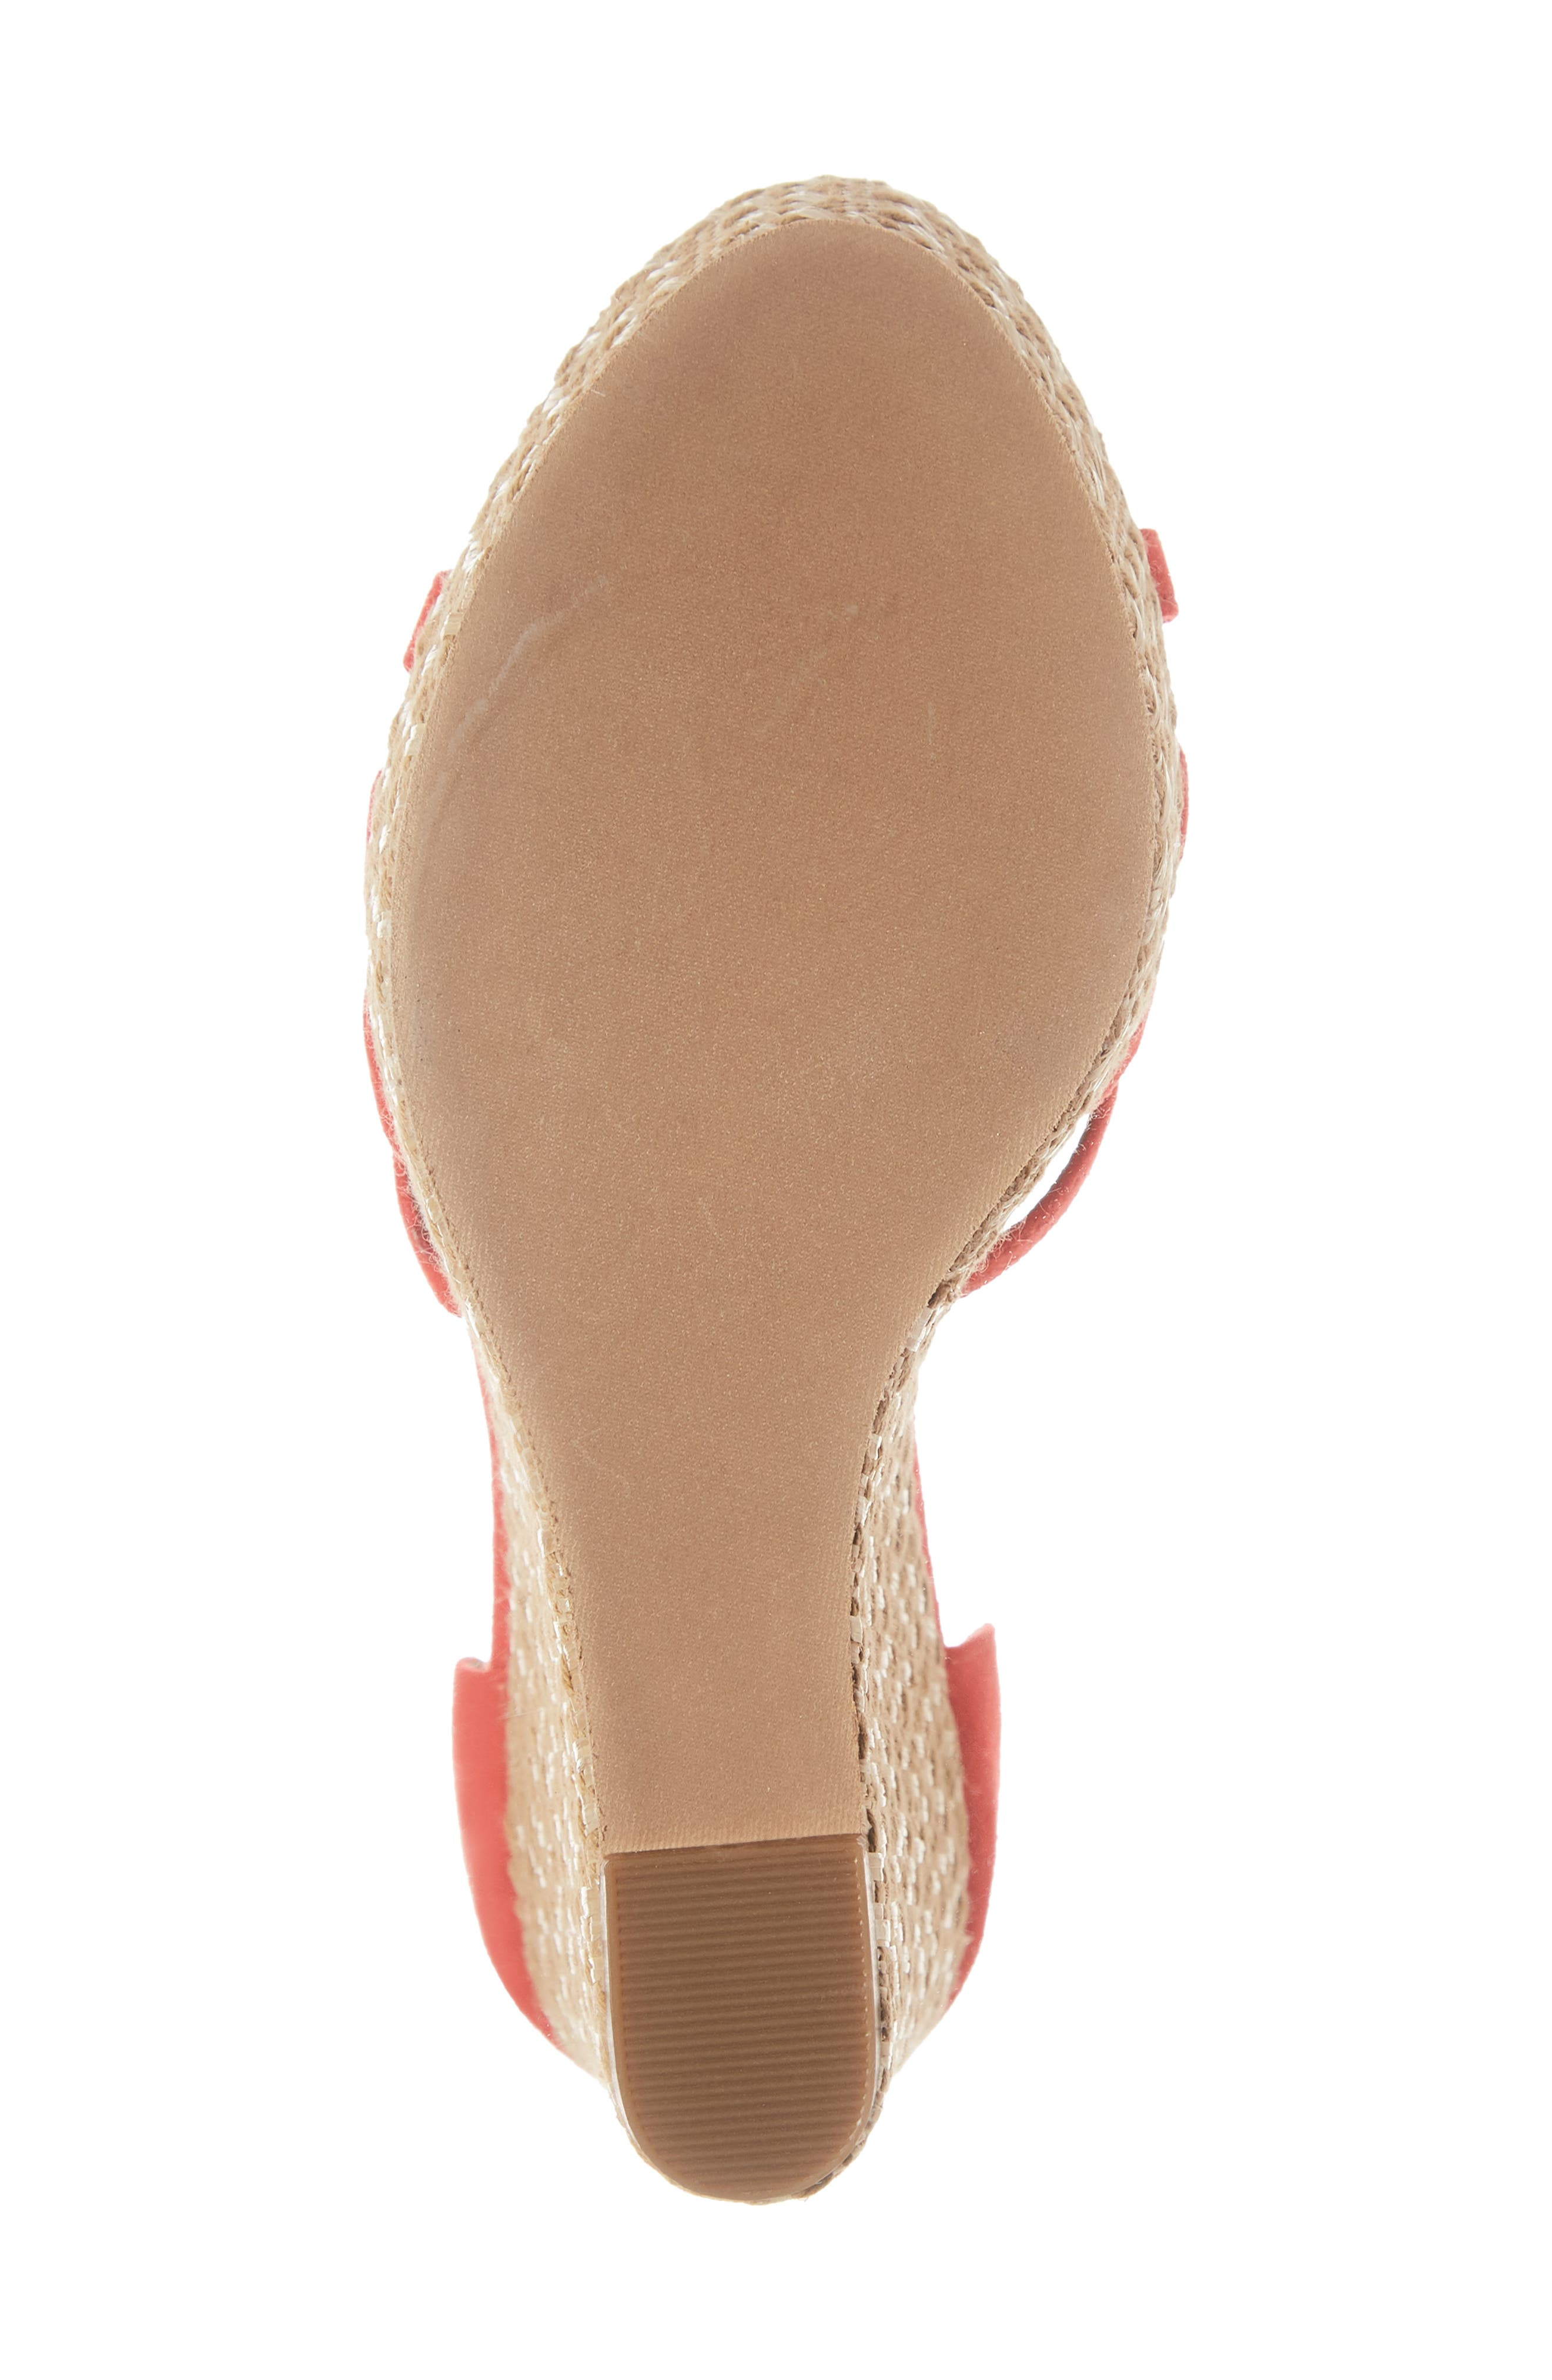 Scarlette Wedge Sandal,                             Alternate thumbnail 6, color,                             RED FAUX SUEDE